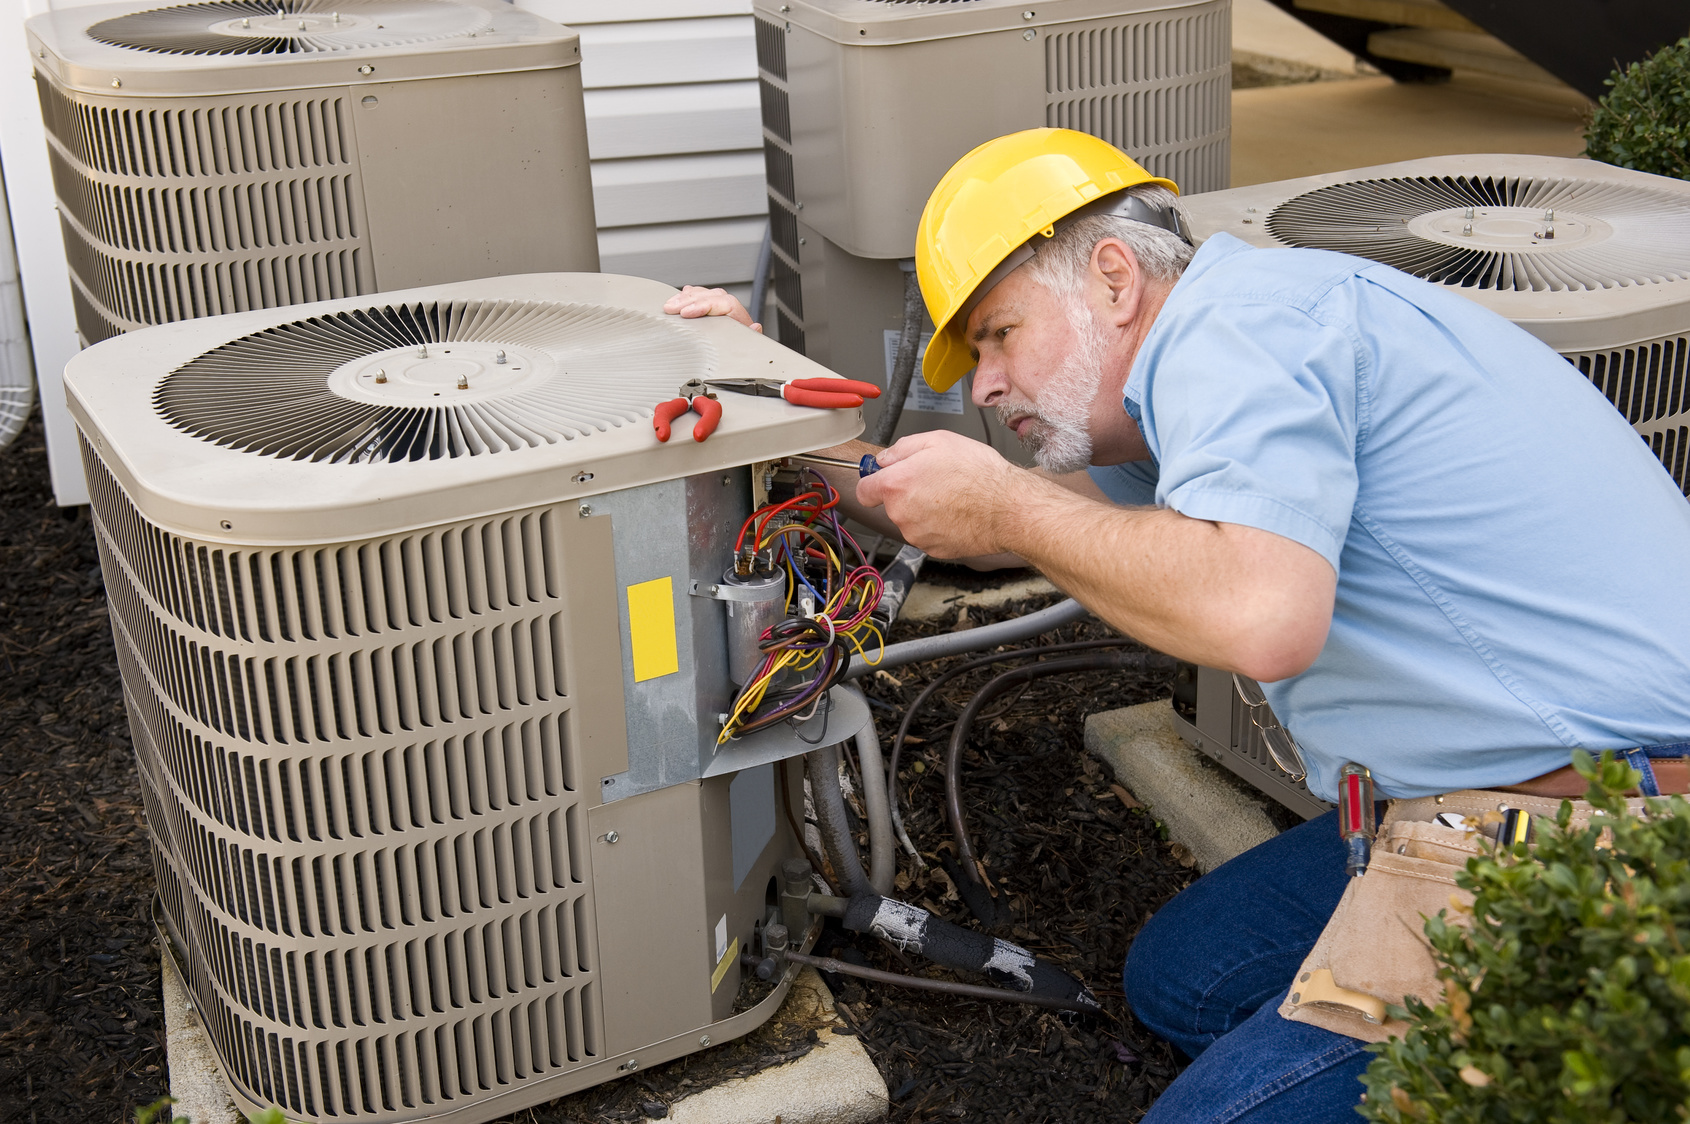 Preparing Your Home Cooling System for Summer